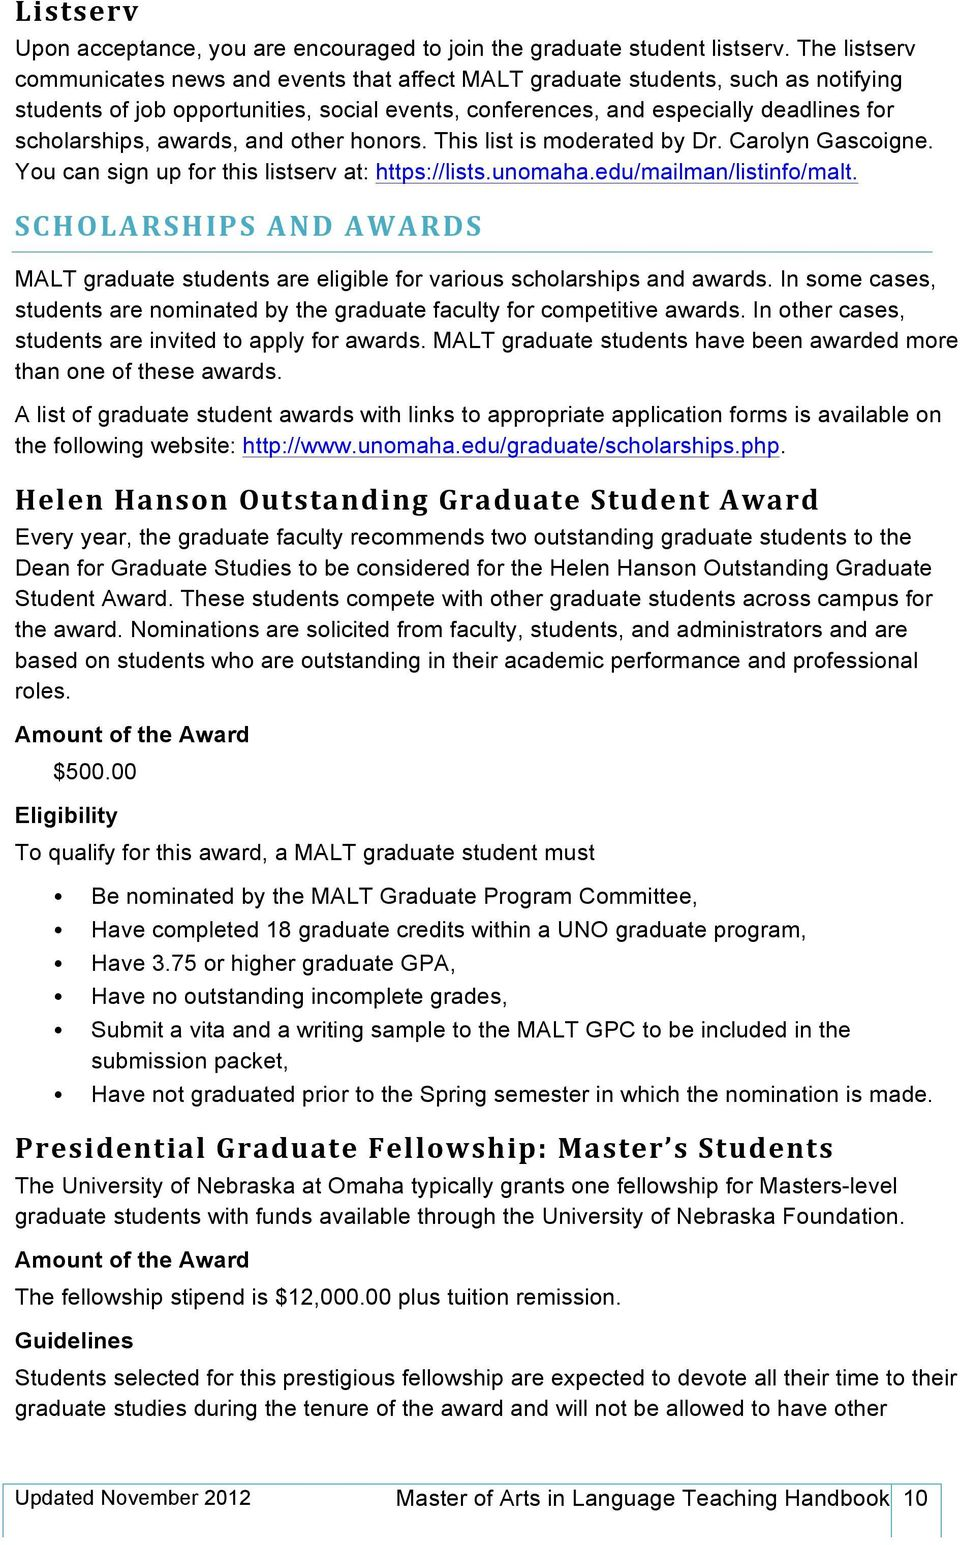 awards, and other honors. This list is moderated by Dr. Carolyn Gascoigne. You can sign up for this listserv at: https://lists.unomaha.edu/mailman/listinfo/malt.